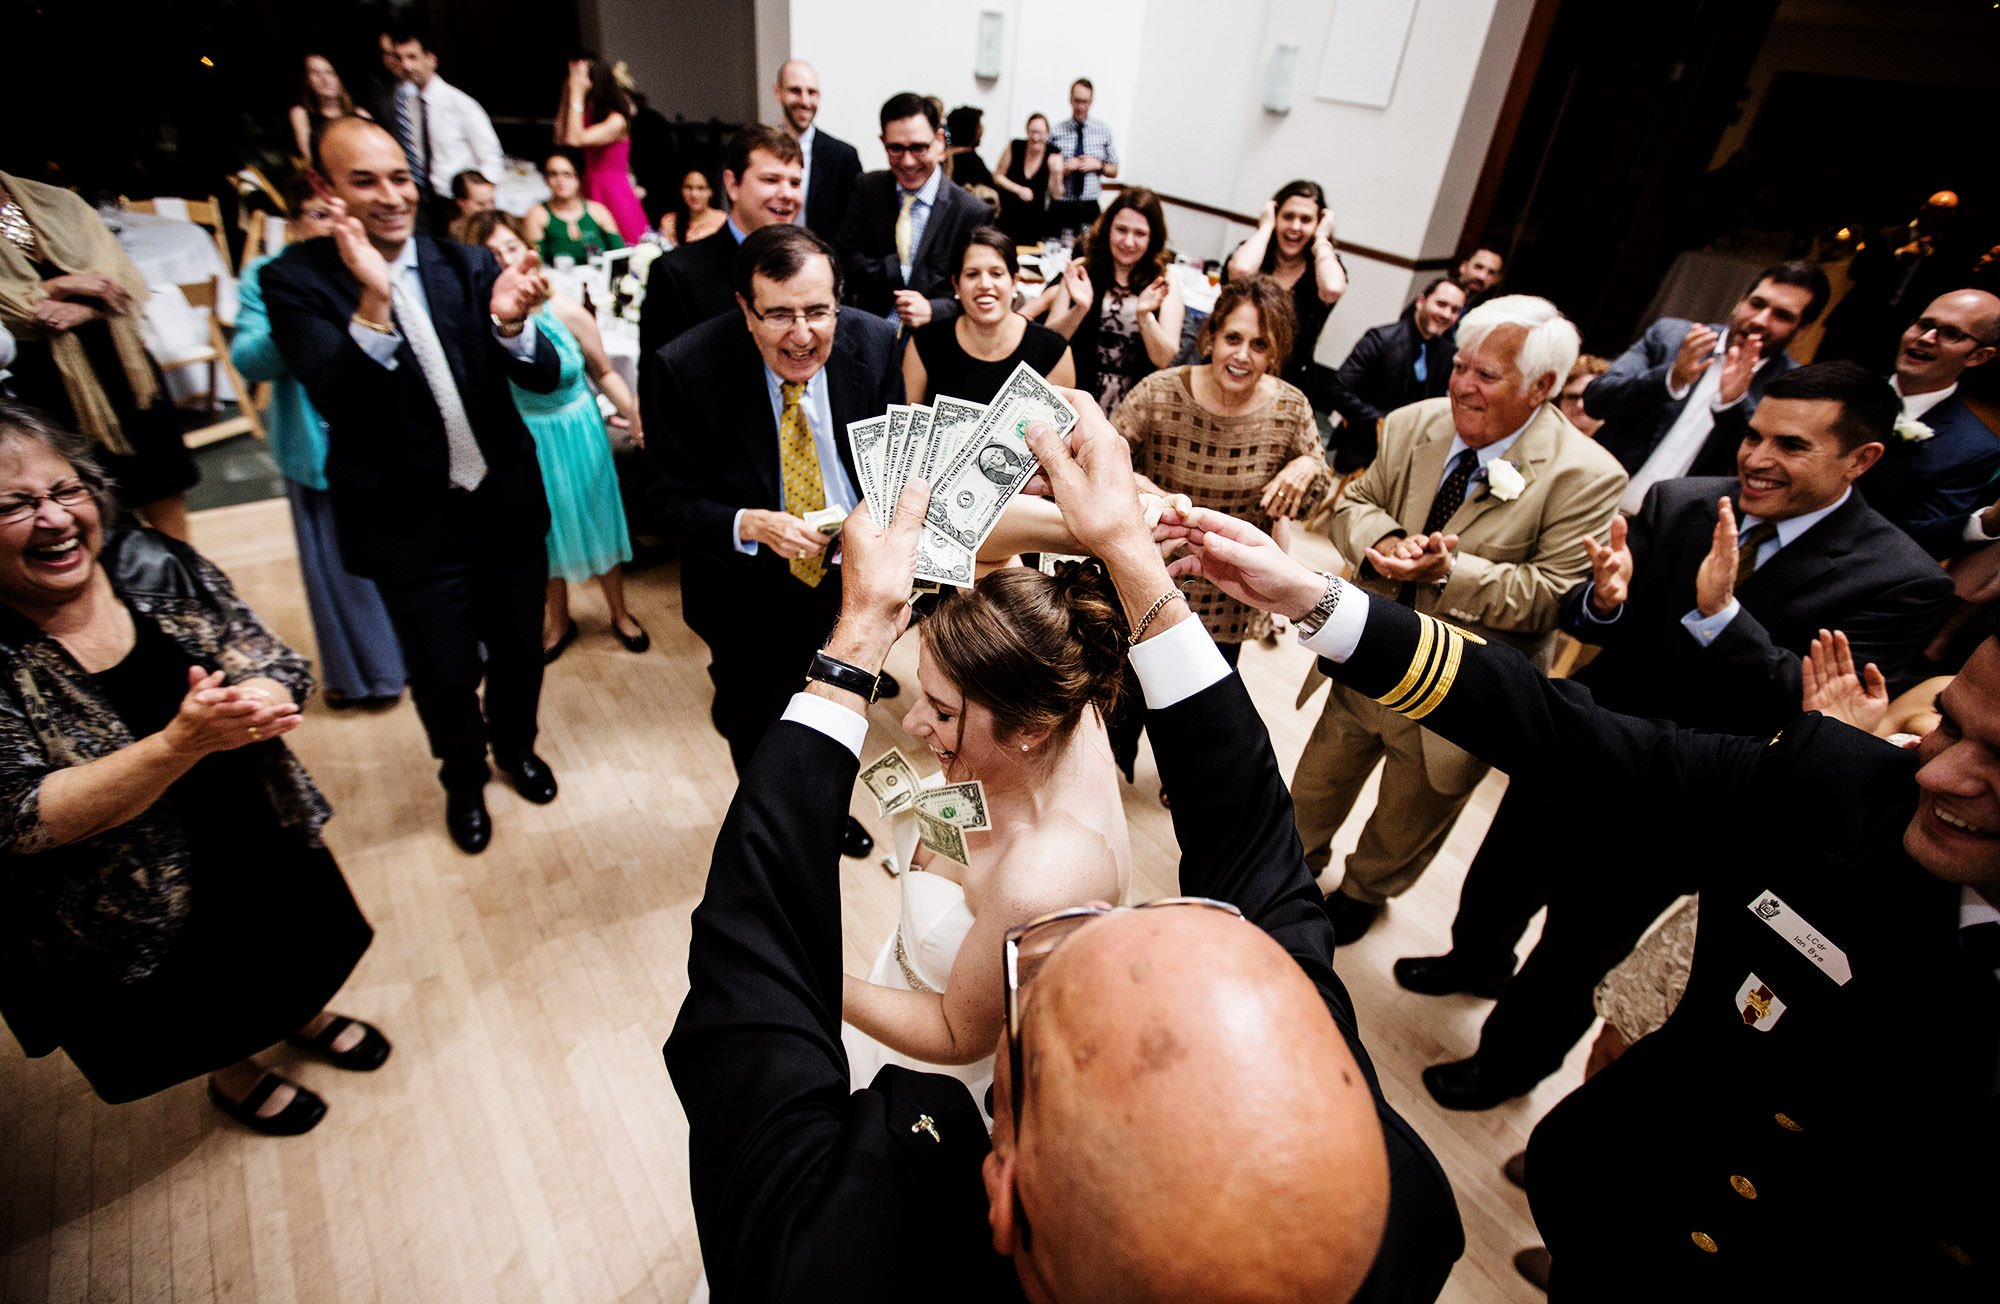 Guests shower the bride with money during the wedding reception at Exchange Conference Center in Boston.